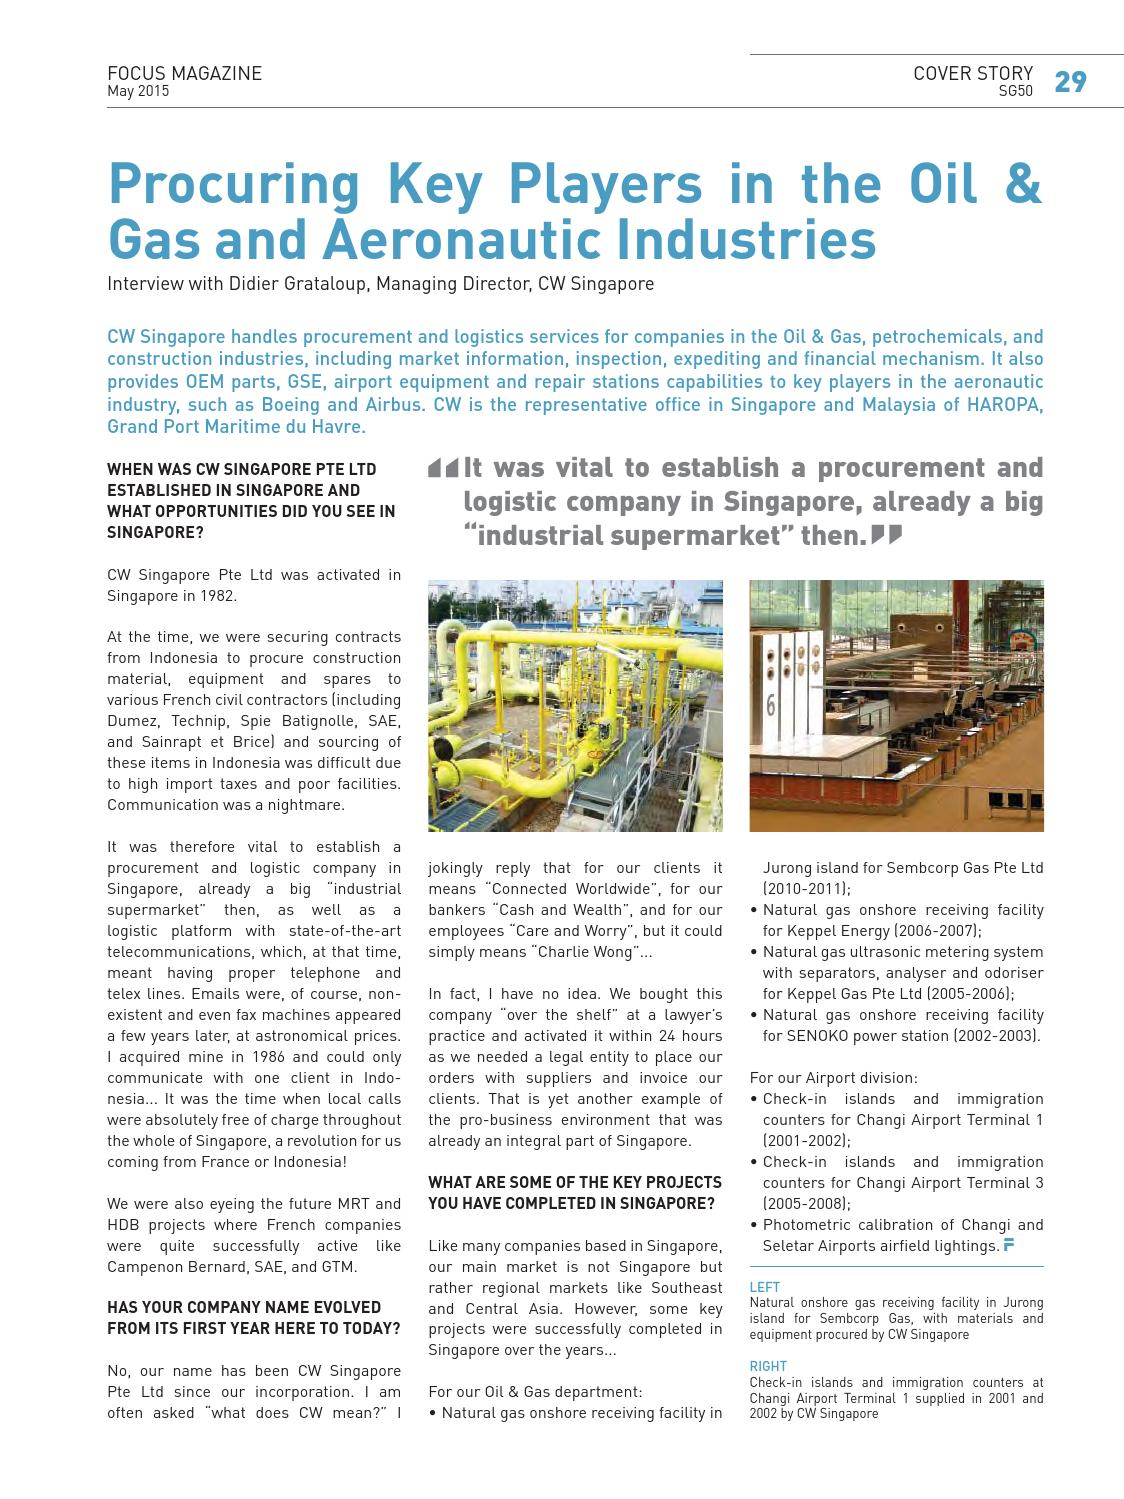 FCCS FOCUS Magazine SG50 - May 2015 by The French Chamber of